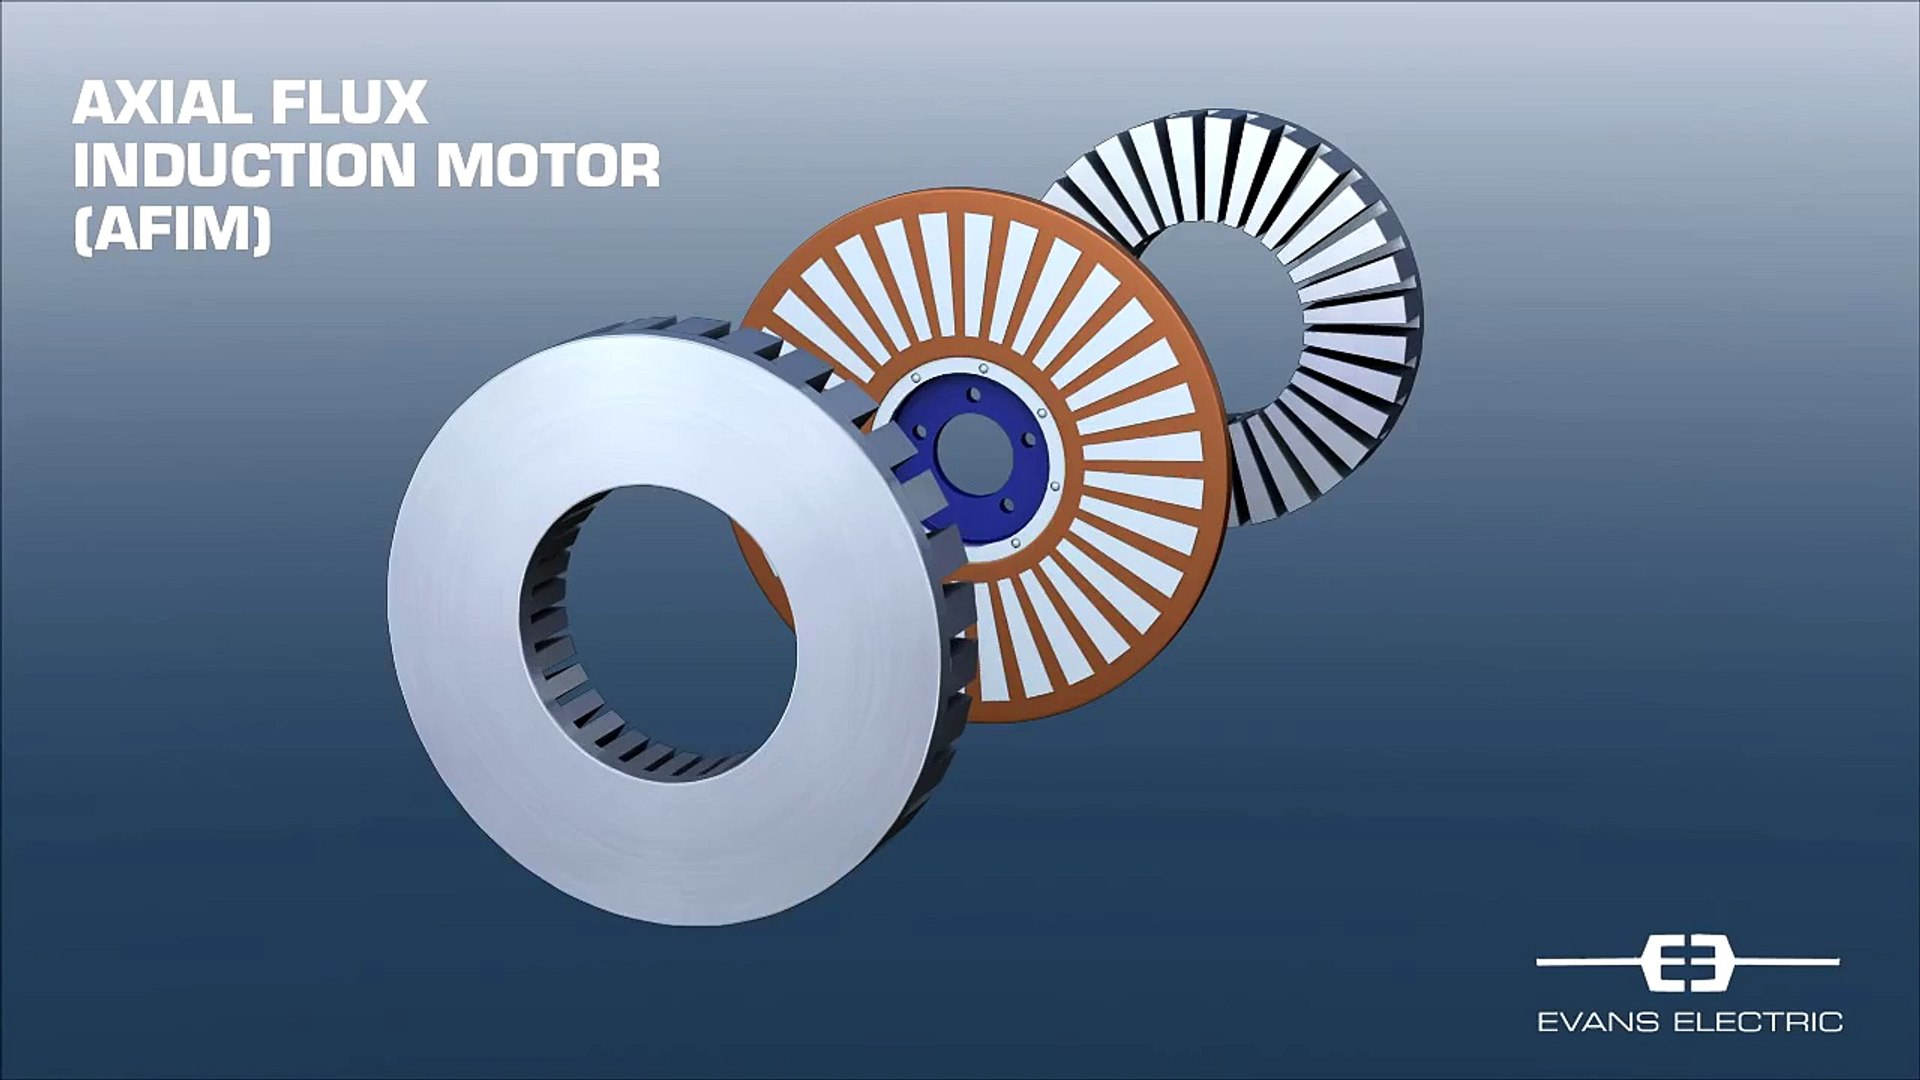 Axial Flux Induction Motor for Hybrid and Electric Cars